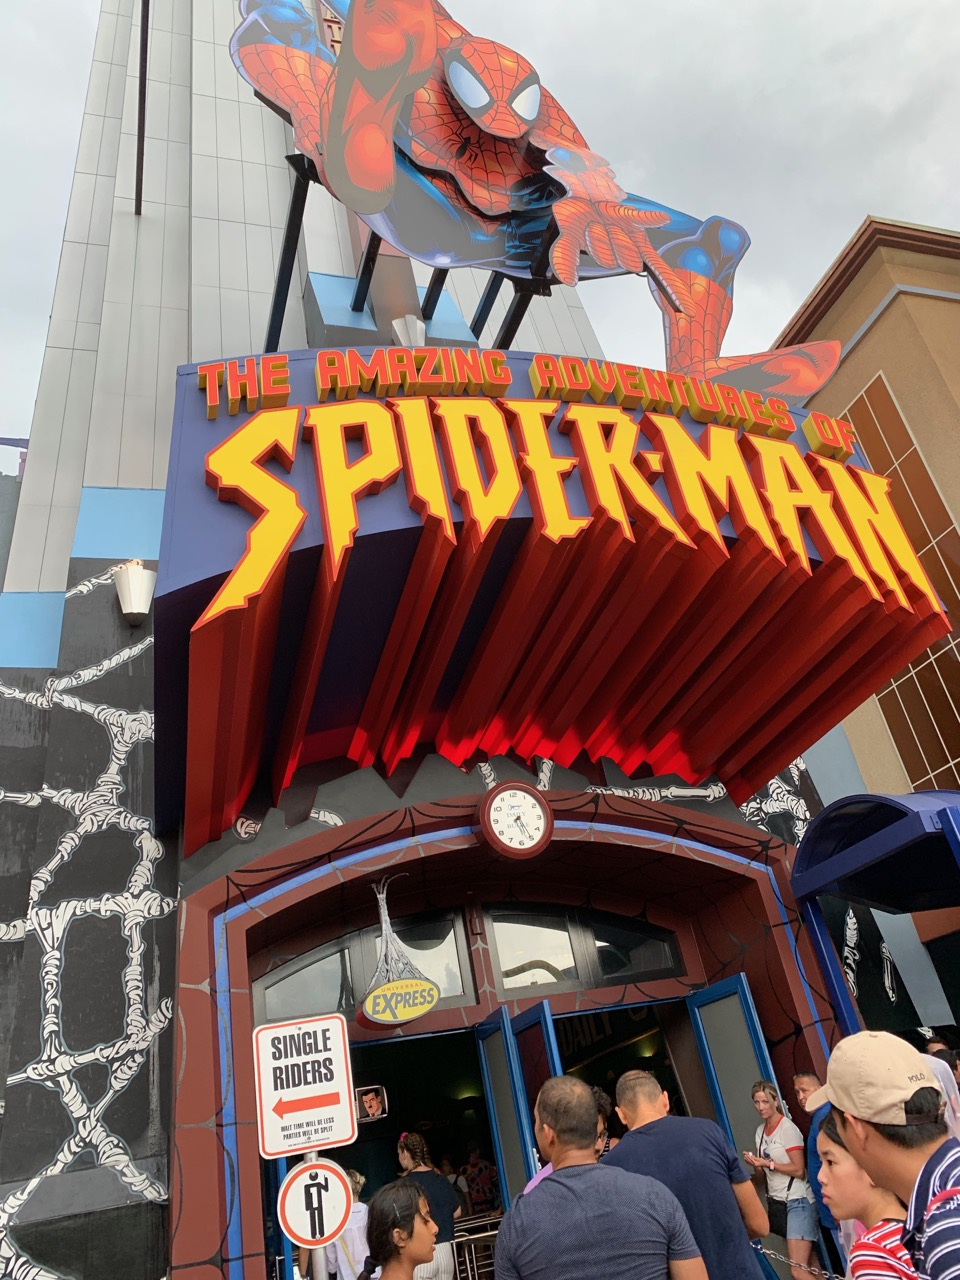 universal islands of adventure rope drop morning strategy 13 spider man.jpeg